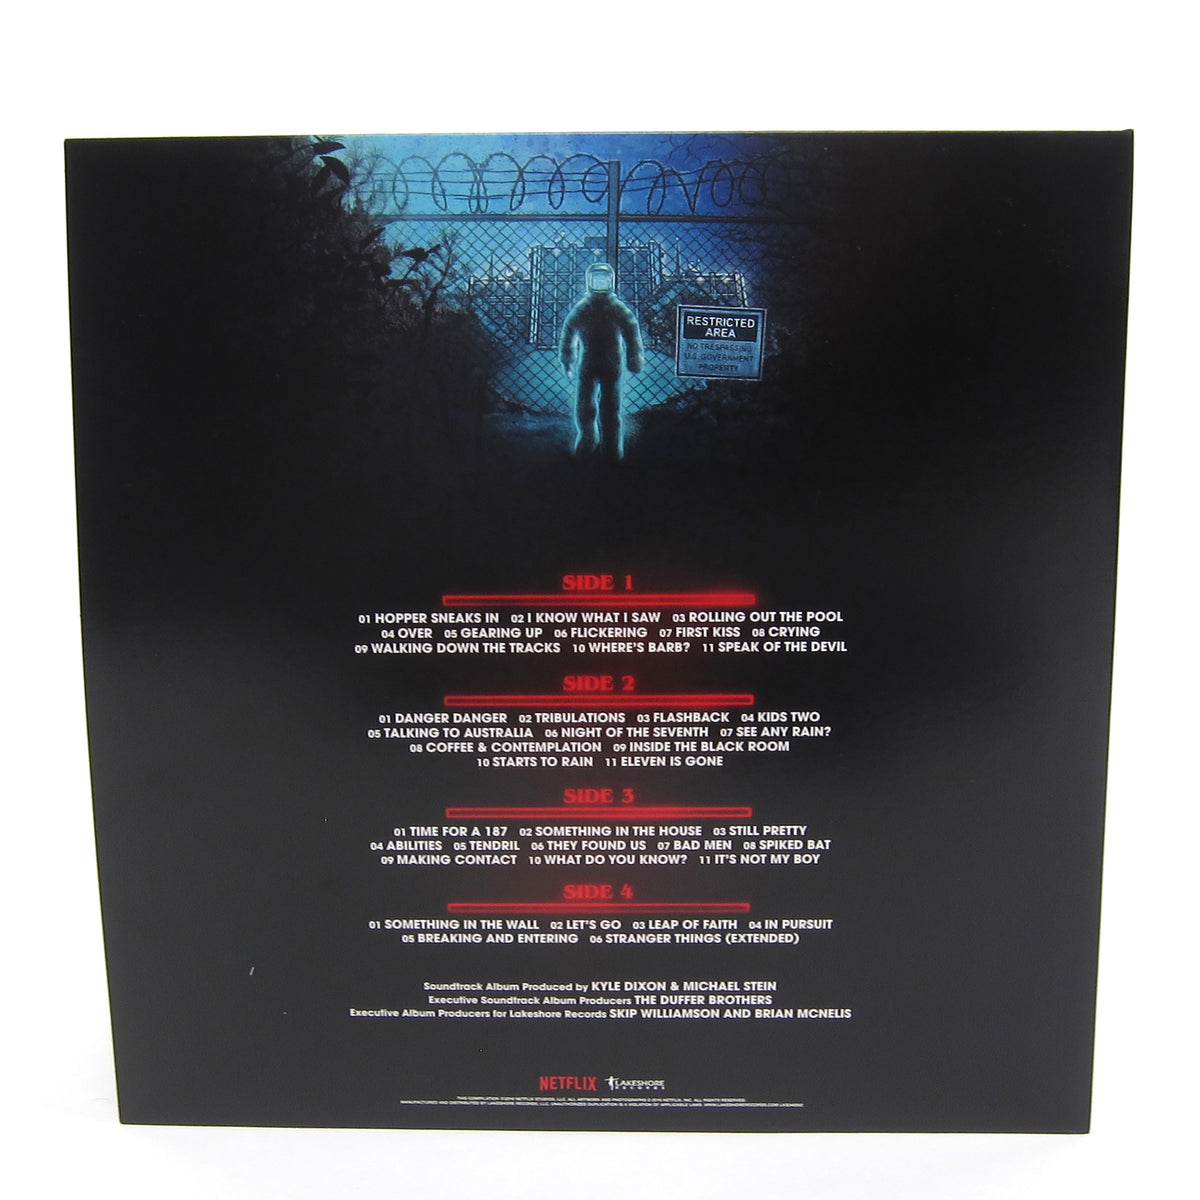 Kyle Dixon & Michael Stein: Stranger Things Vol.2 (Upside Down Blue Colored Vinyl) Vinyl 2LP